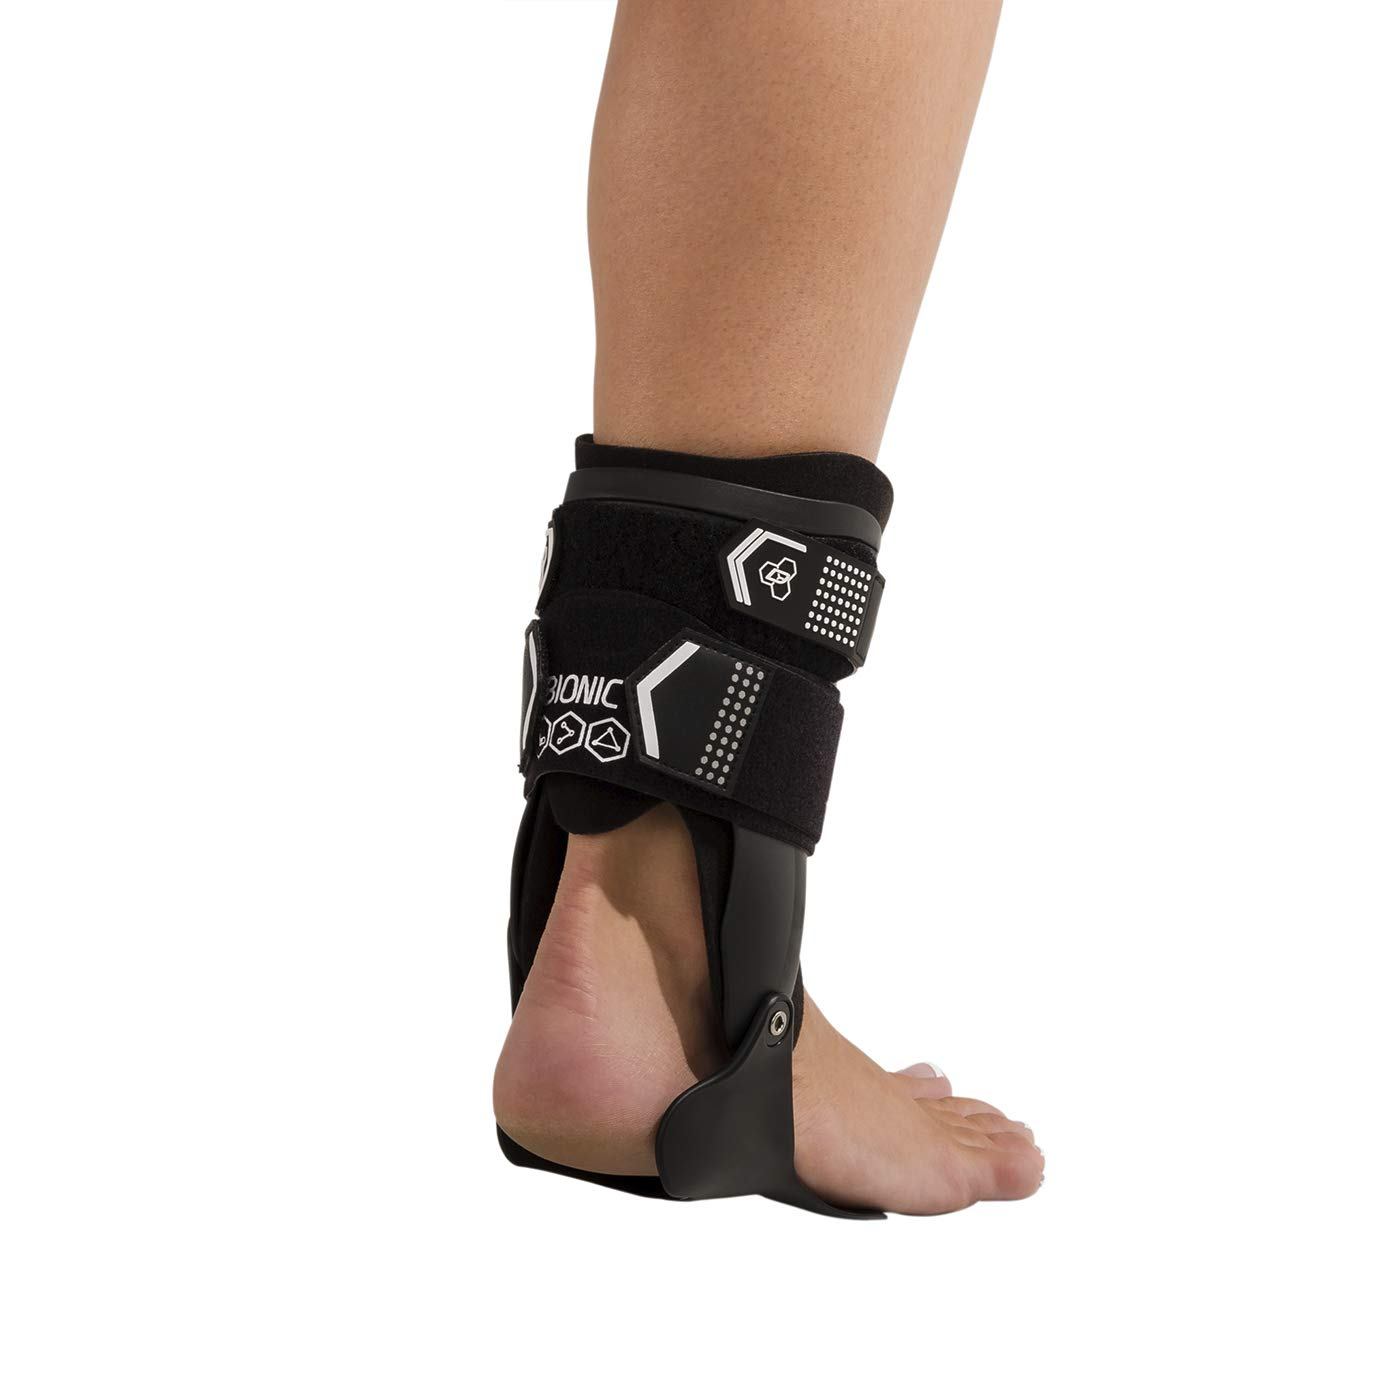 DonJoy Performance Bionic Stirrup Ankle Braces (Right and Left Pair), Maximum Medial Lateral Ankle Support, Low-Profile Rigid Brace, Adjustable - Black, Medium - Value Bundle by DonJoy Performance (Image #4)